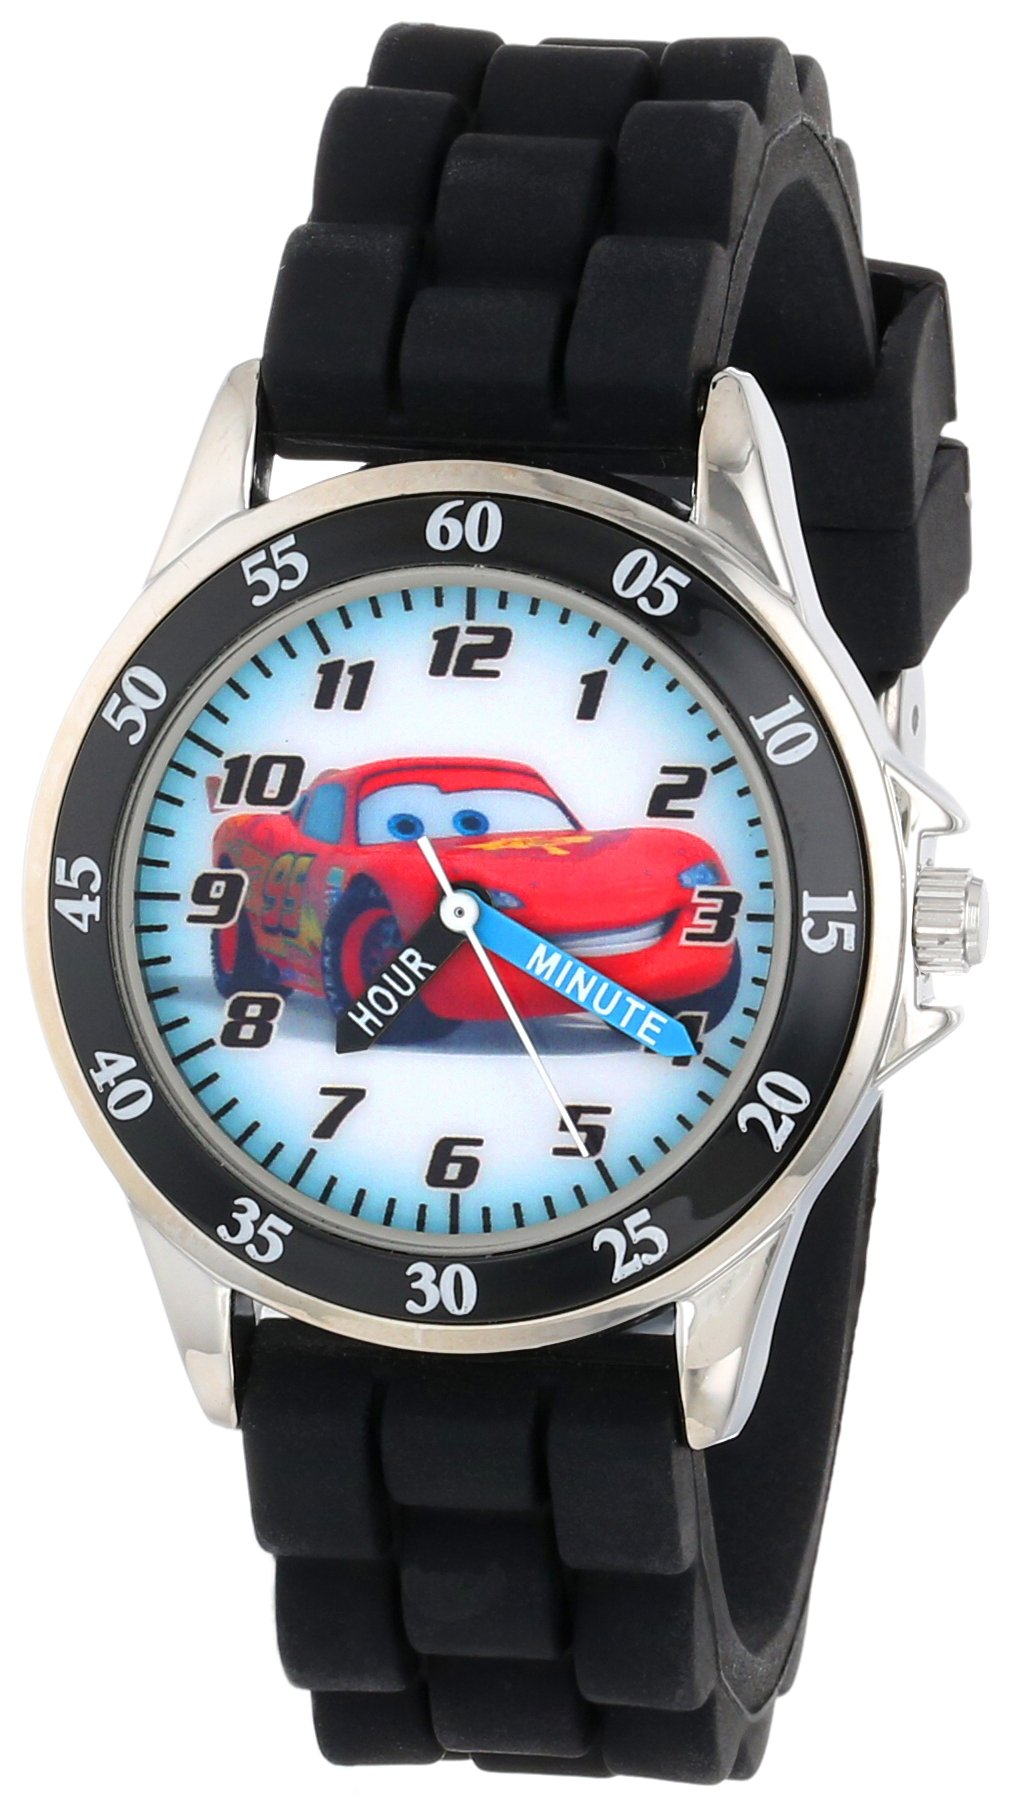 Disney Kid's Cars Watch, Learn How to Tell Time - Kid's Time Teacher Watch with Official Cars Character on The Dial, Childrens Watch with Black Rubber Strap, Kids Analog Watch, Safe for Children by Disney